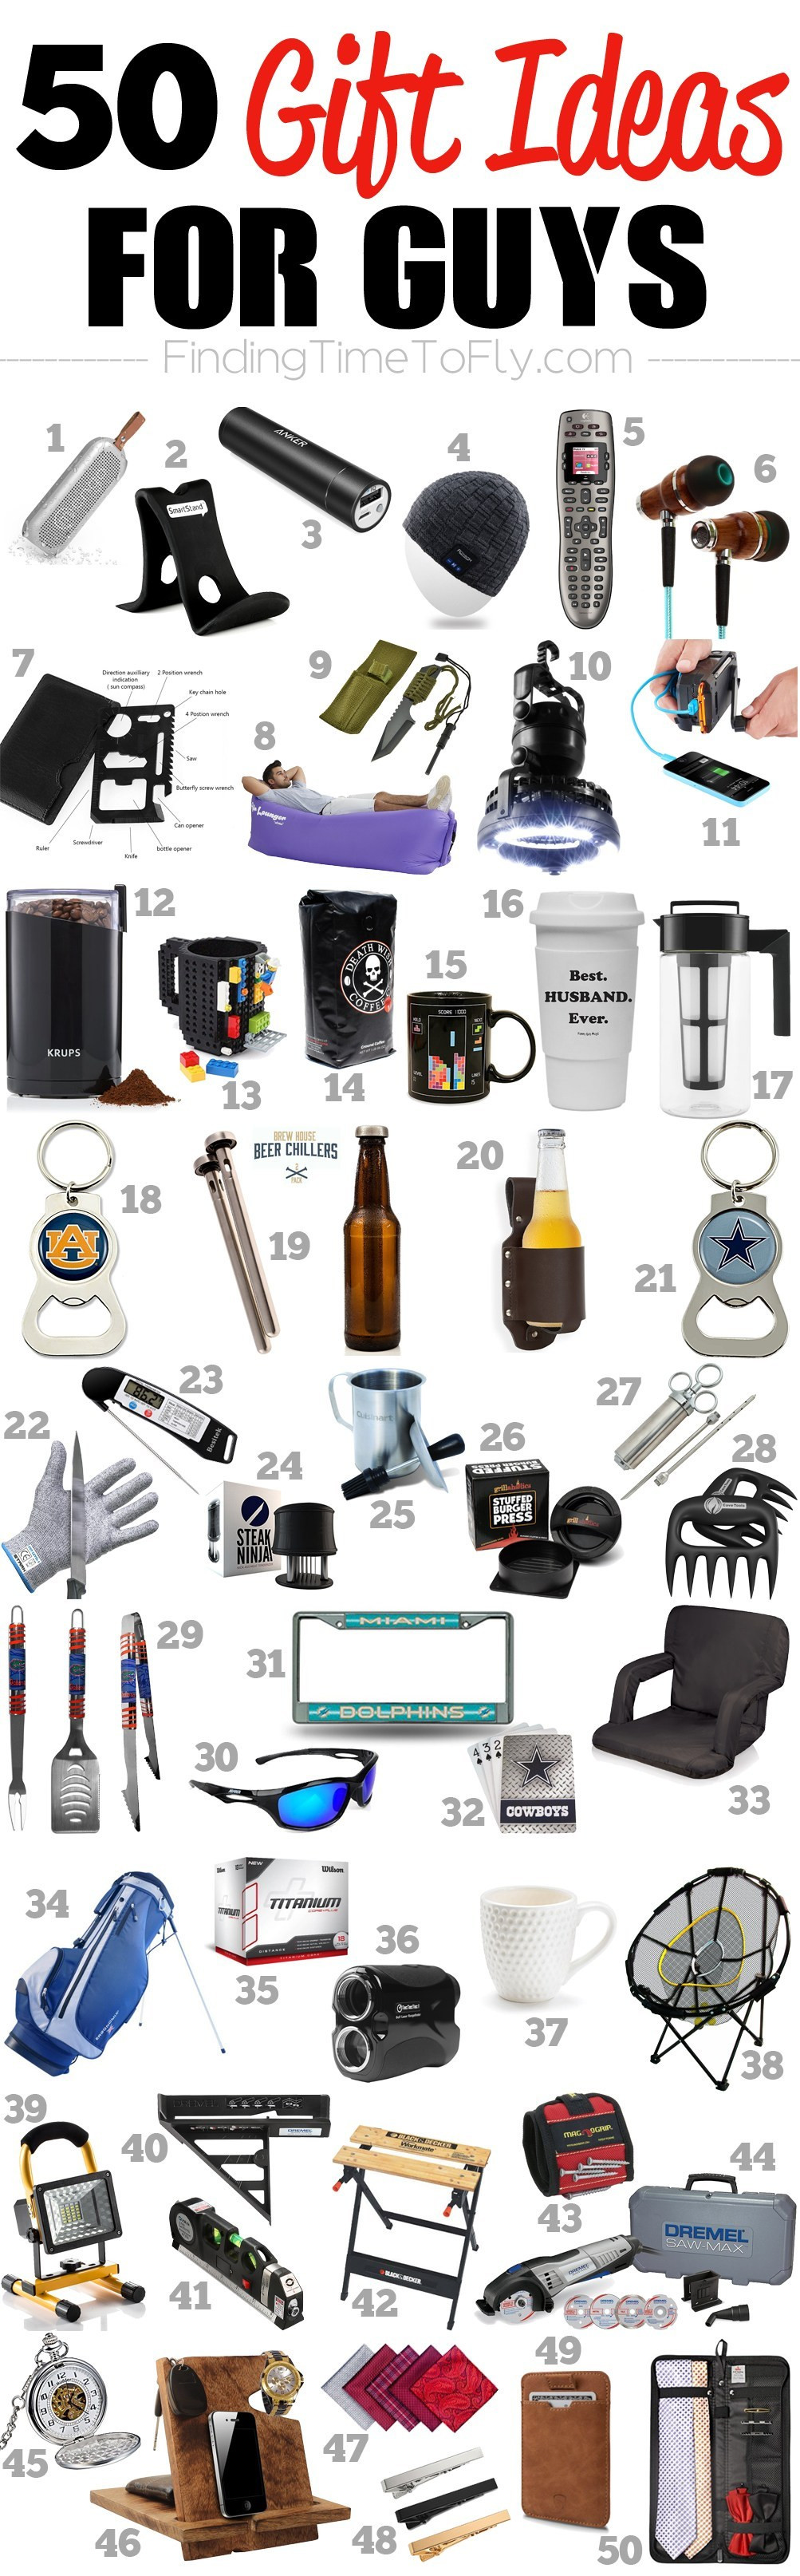 Best ideas about Good Gift Ideas For Men . Save or Pin 50 Gifts for Guys for Every Occasion Finding Time To Fly Now.